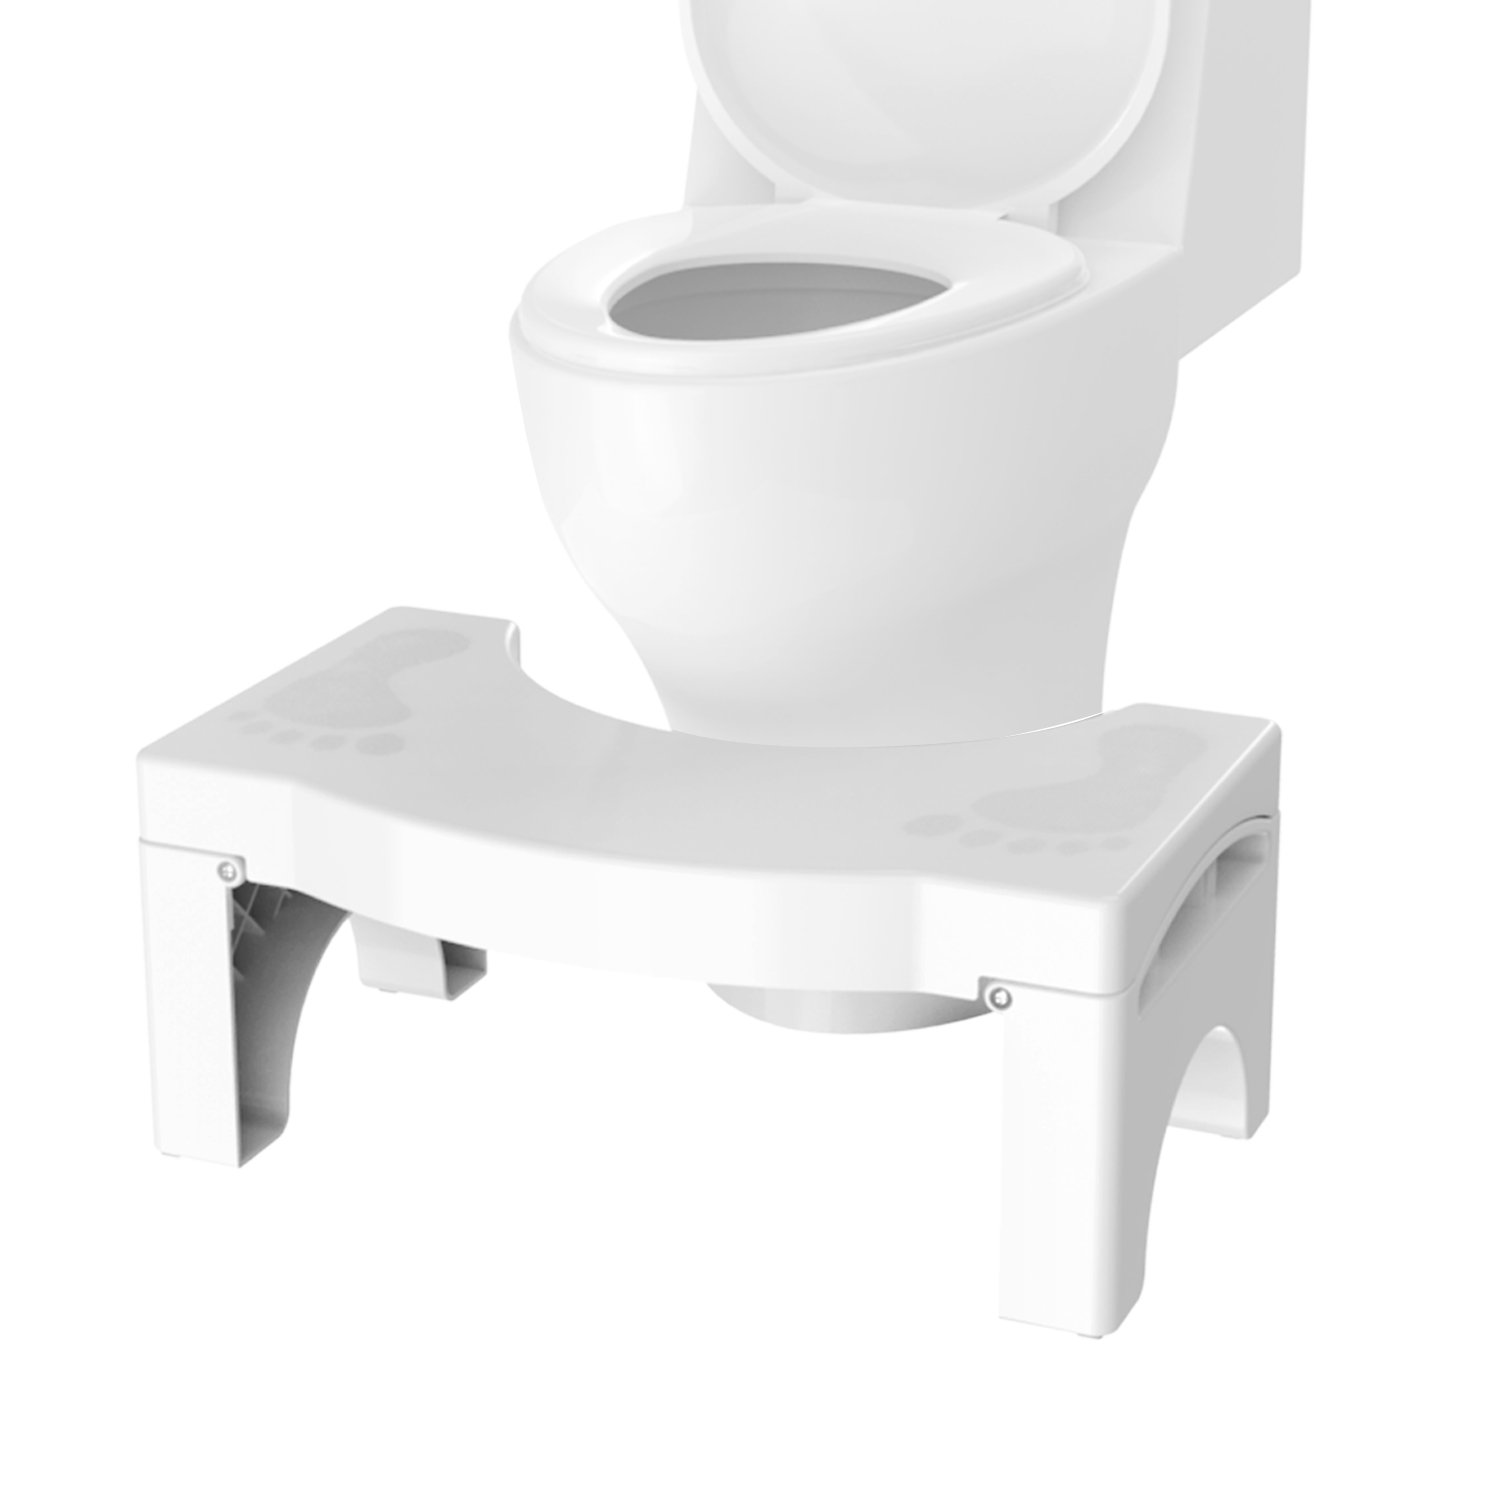 Toilet Stool 7 inch - Portable and Foldable Bathroom Squatting Stool for Toilet and Potty - Poop Stool for Kids and Whole Family - Doctor Recommended